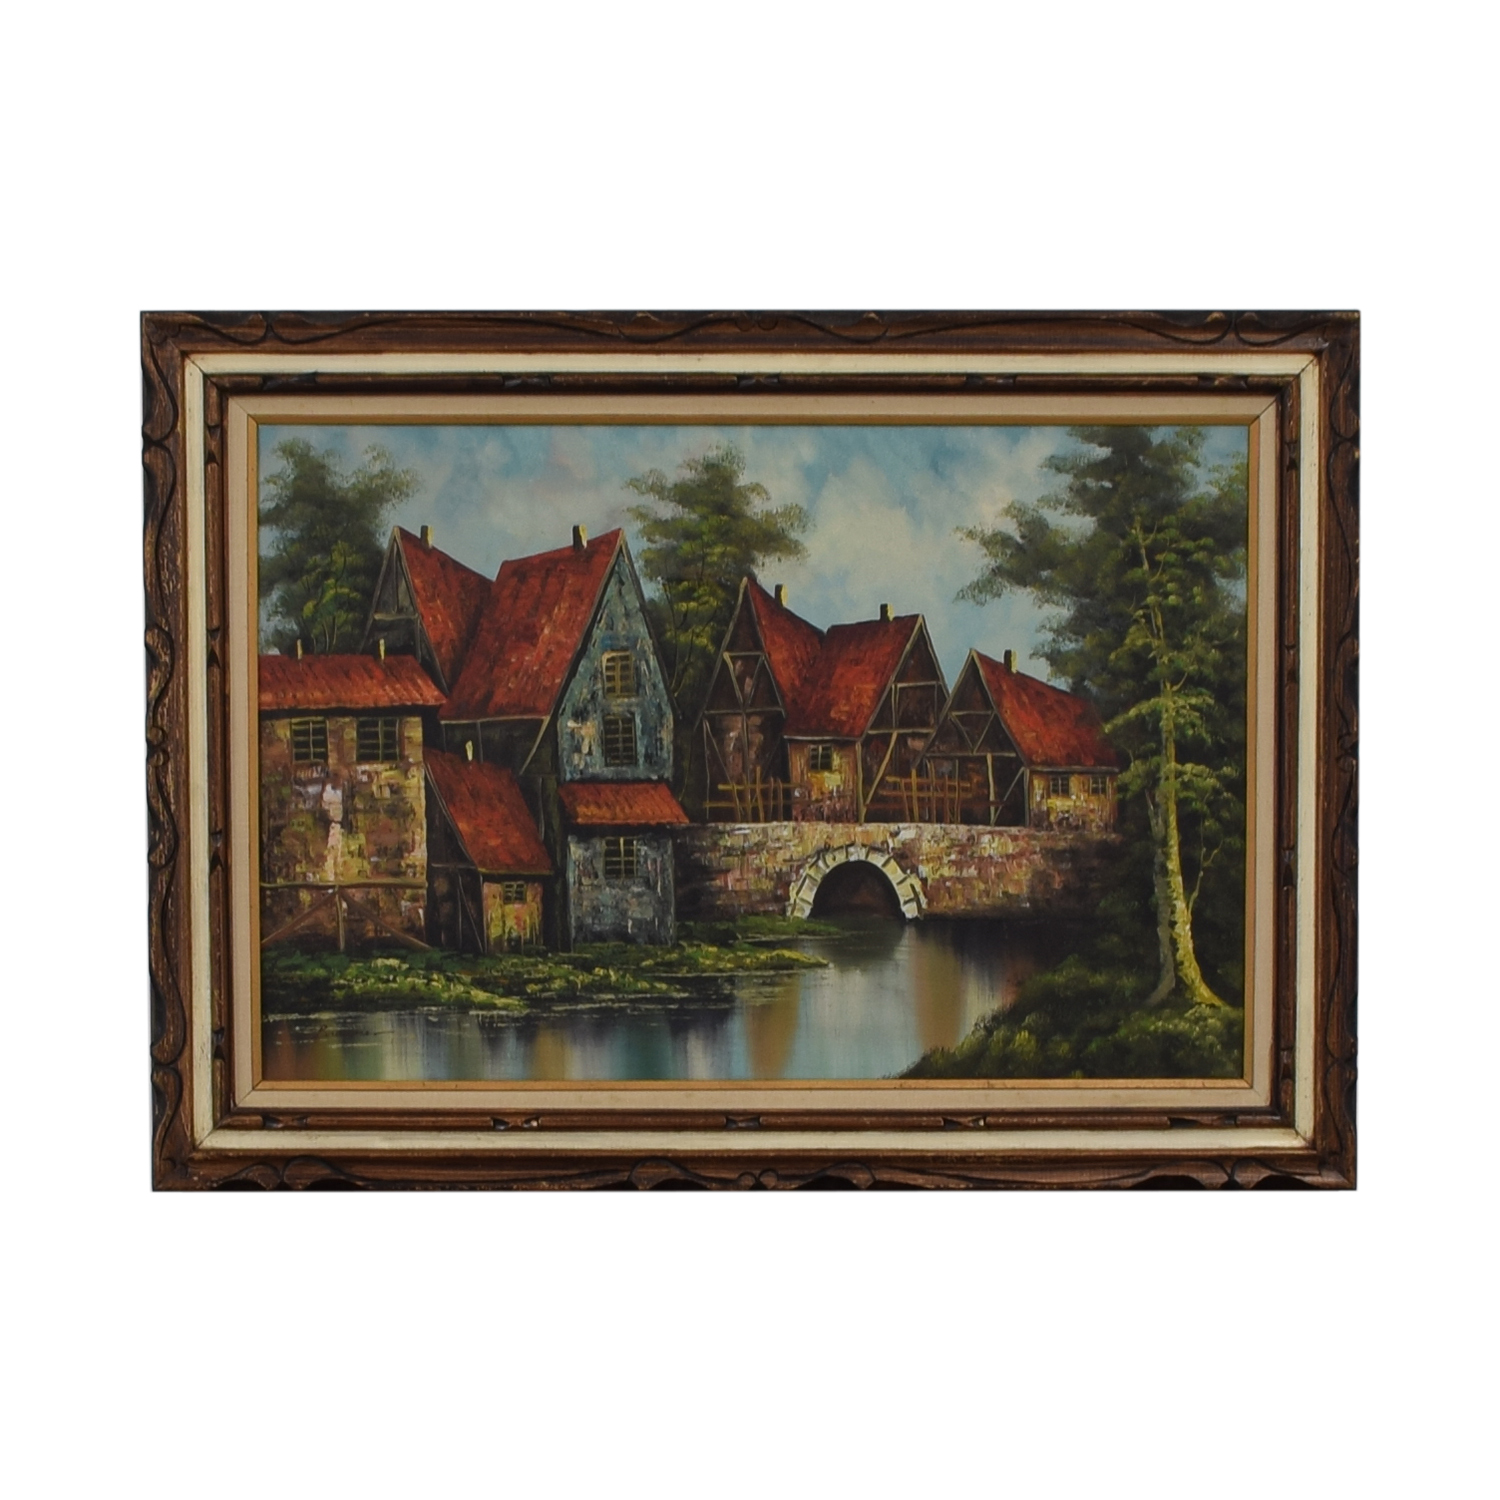 Scenic Village Water Painting on sale